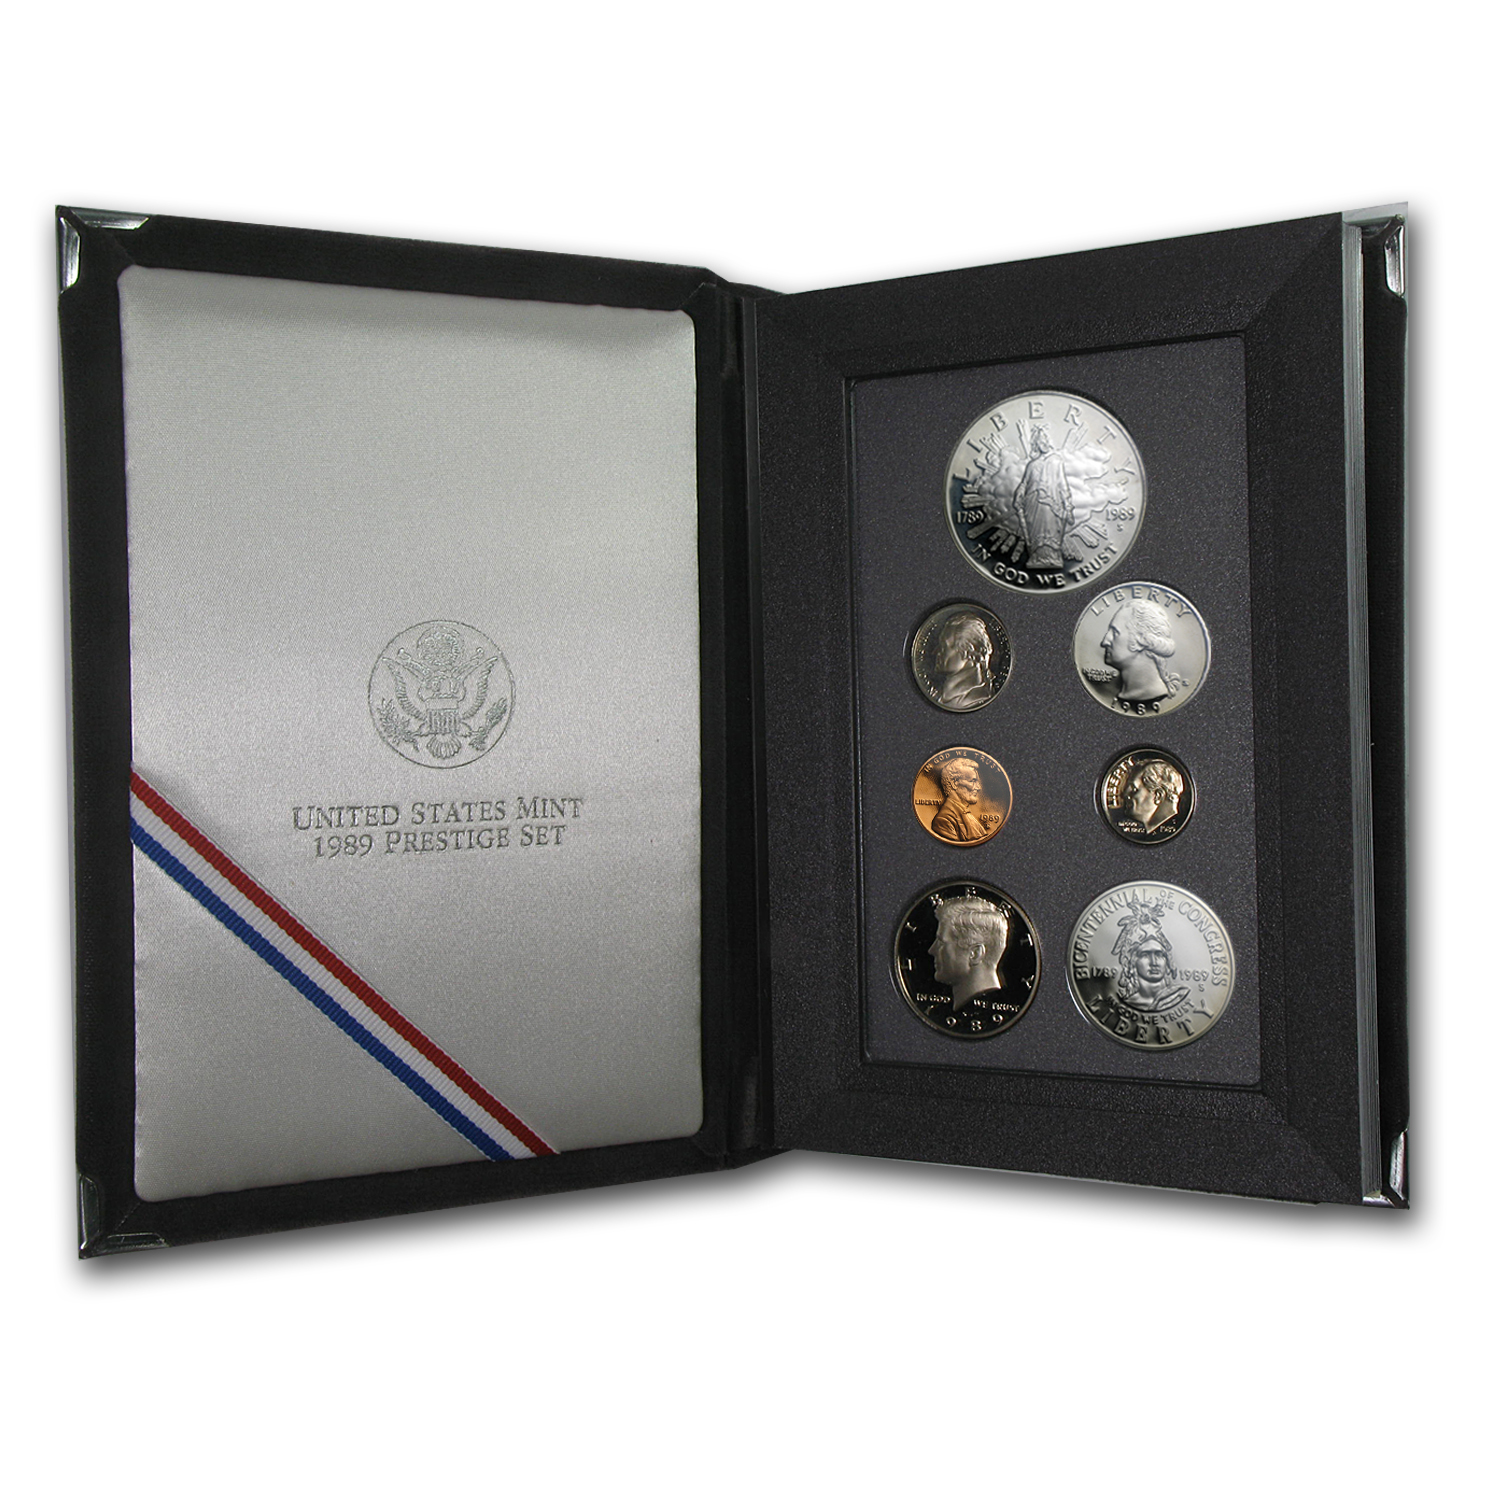 1989 U.S. Mint Prestige Set